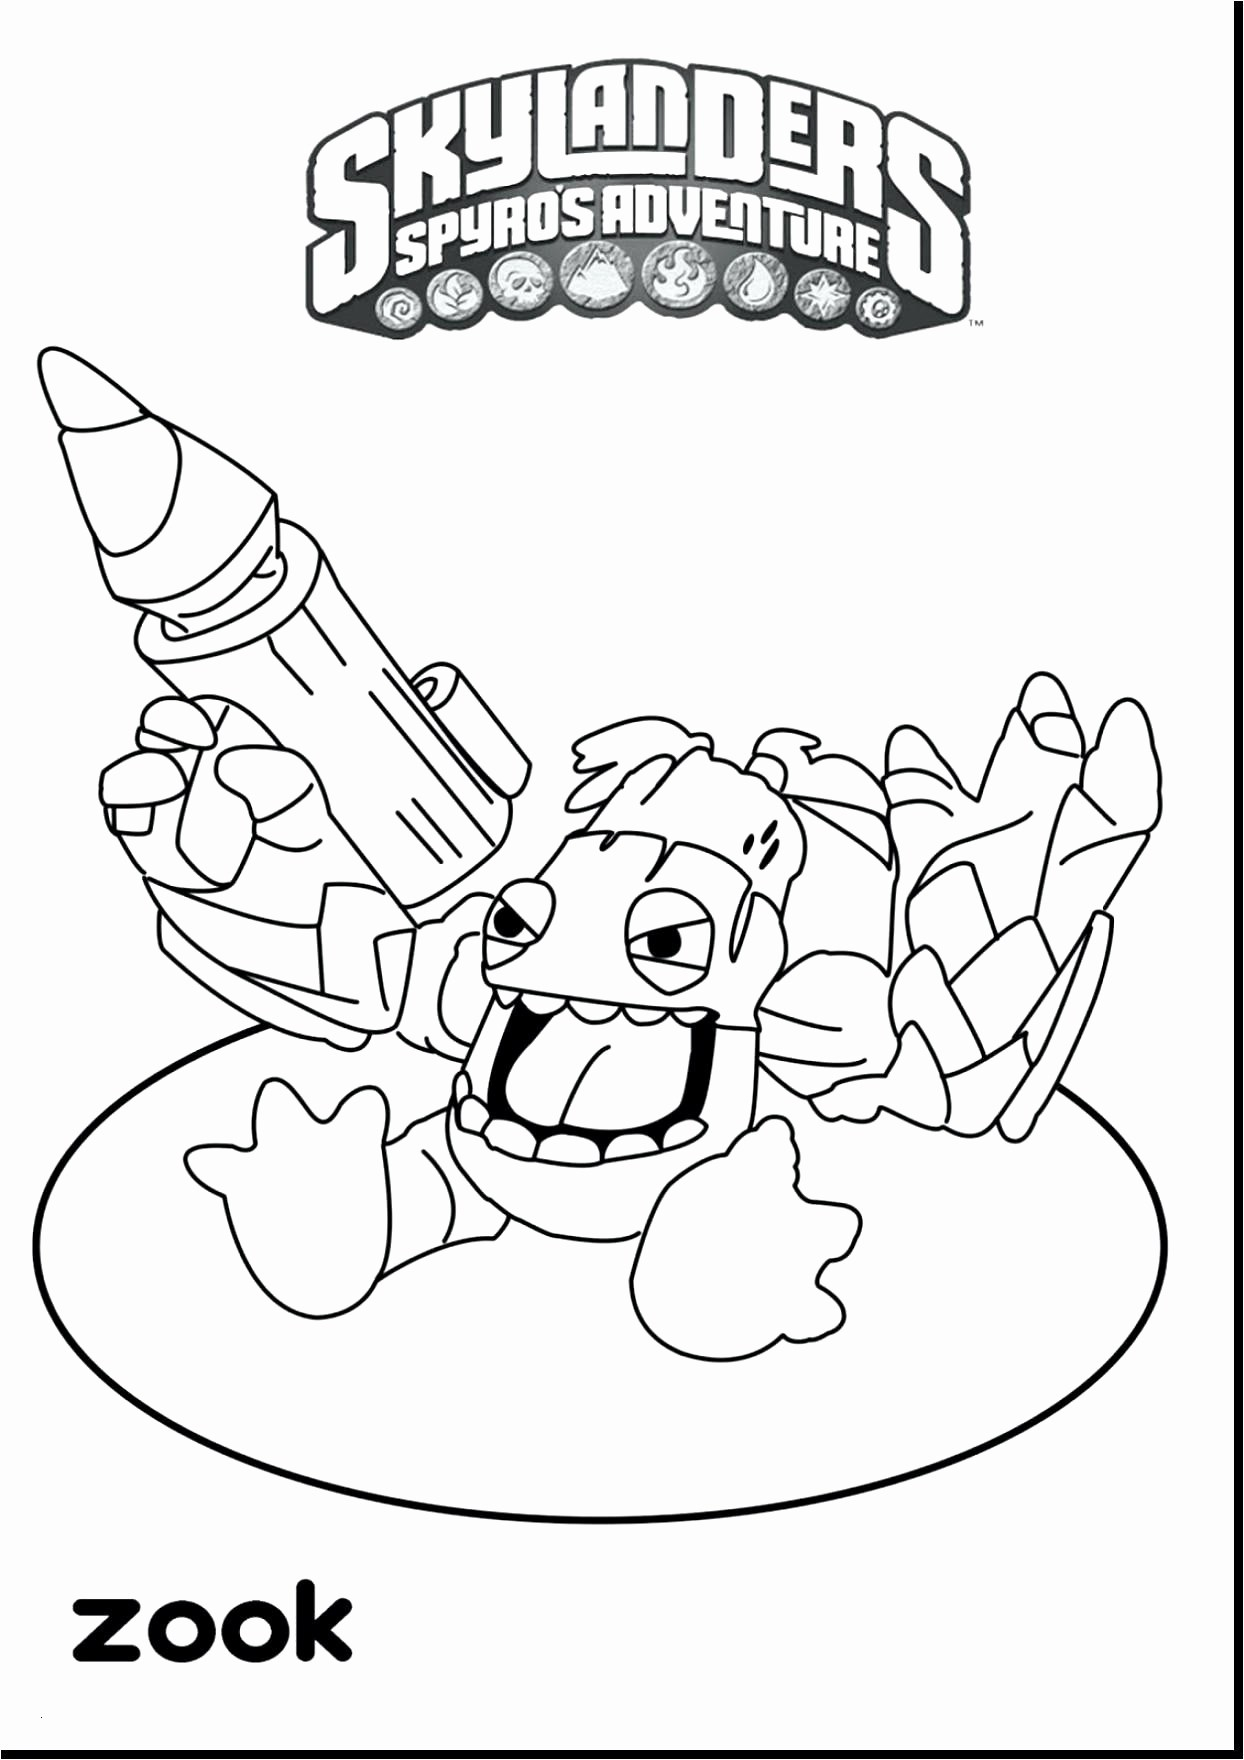 Otter Coloring Pages - Gumball Coloring Pages Coloring Pages Coloring Pages